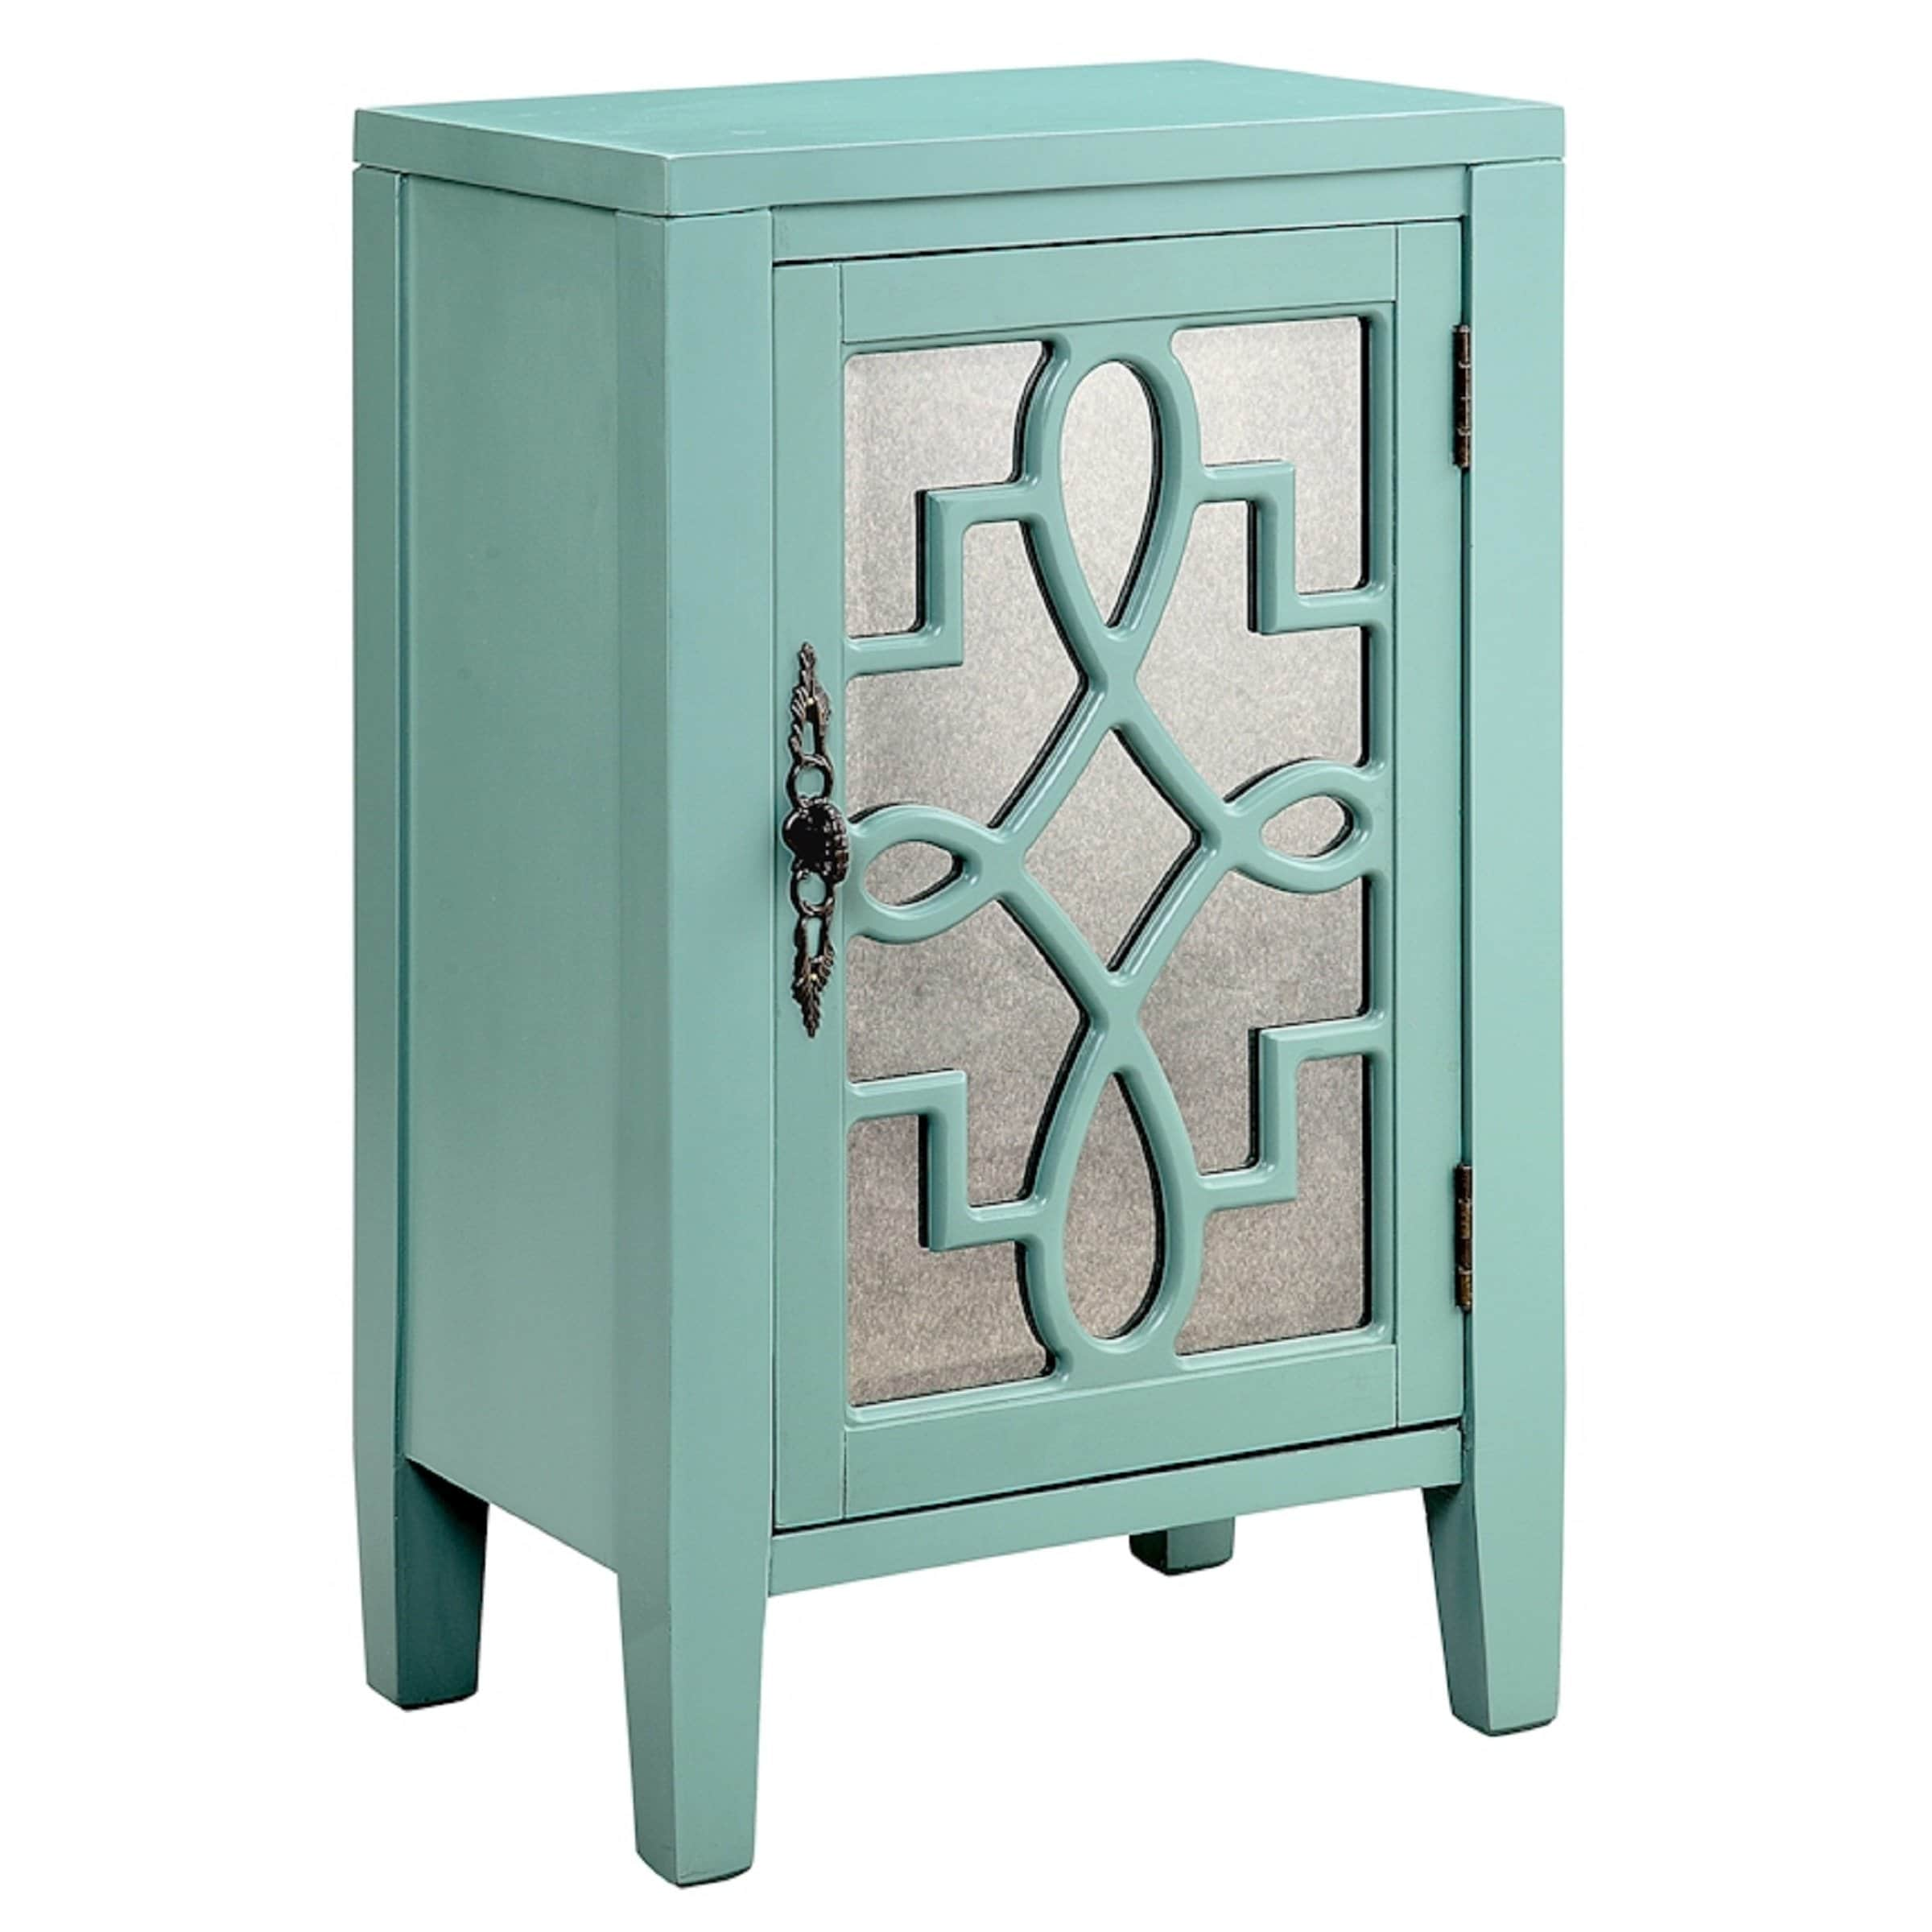 leighton accent cabinet free shipping today fretwork table blue canadian tire tile patio outdoor furniture turquoise dresser slim side ikea dale tiffany glass wall art square fall